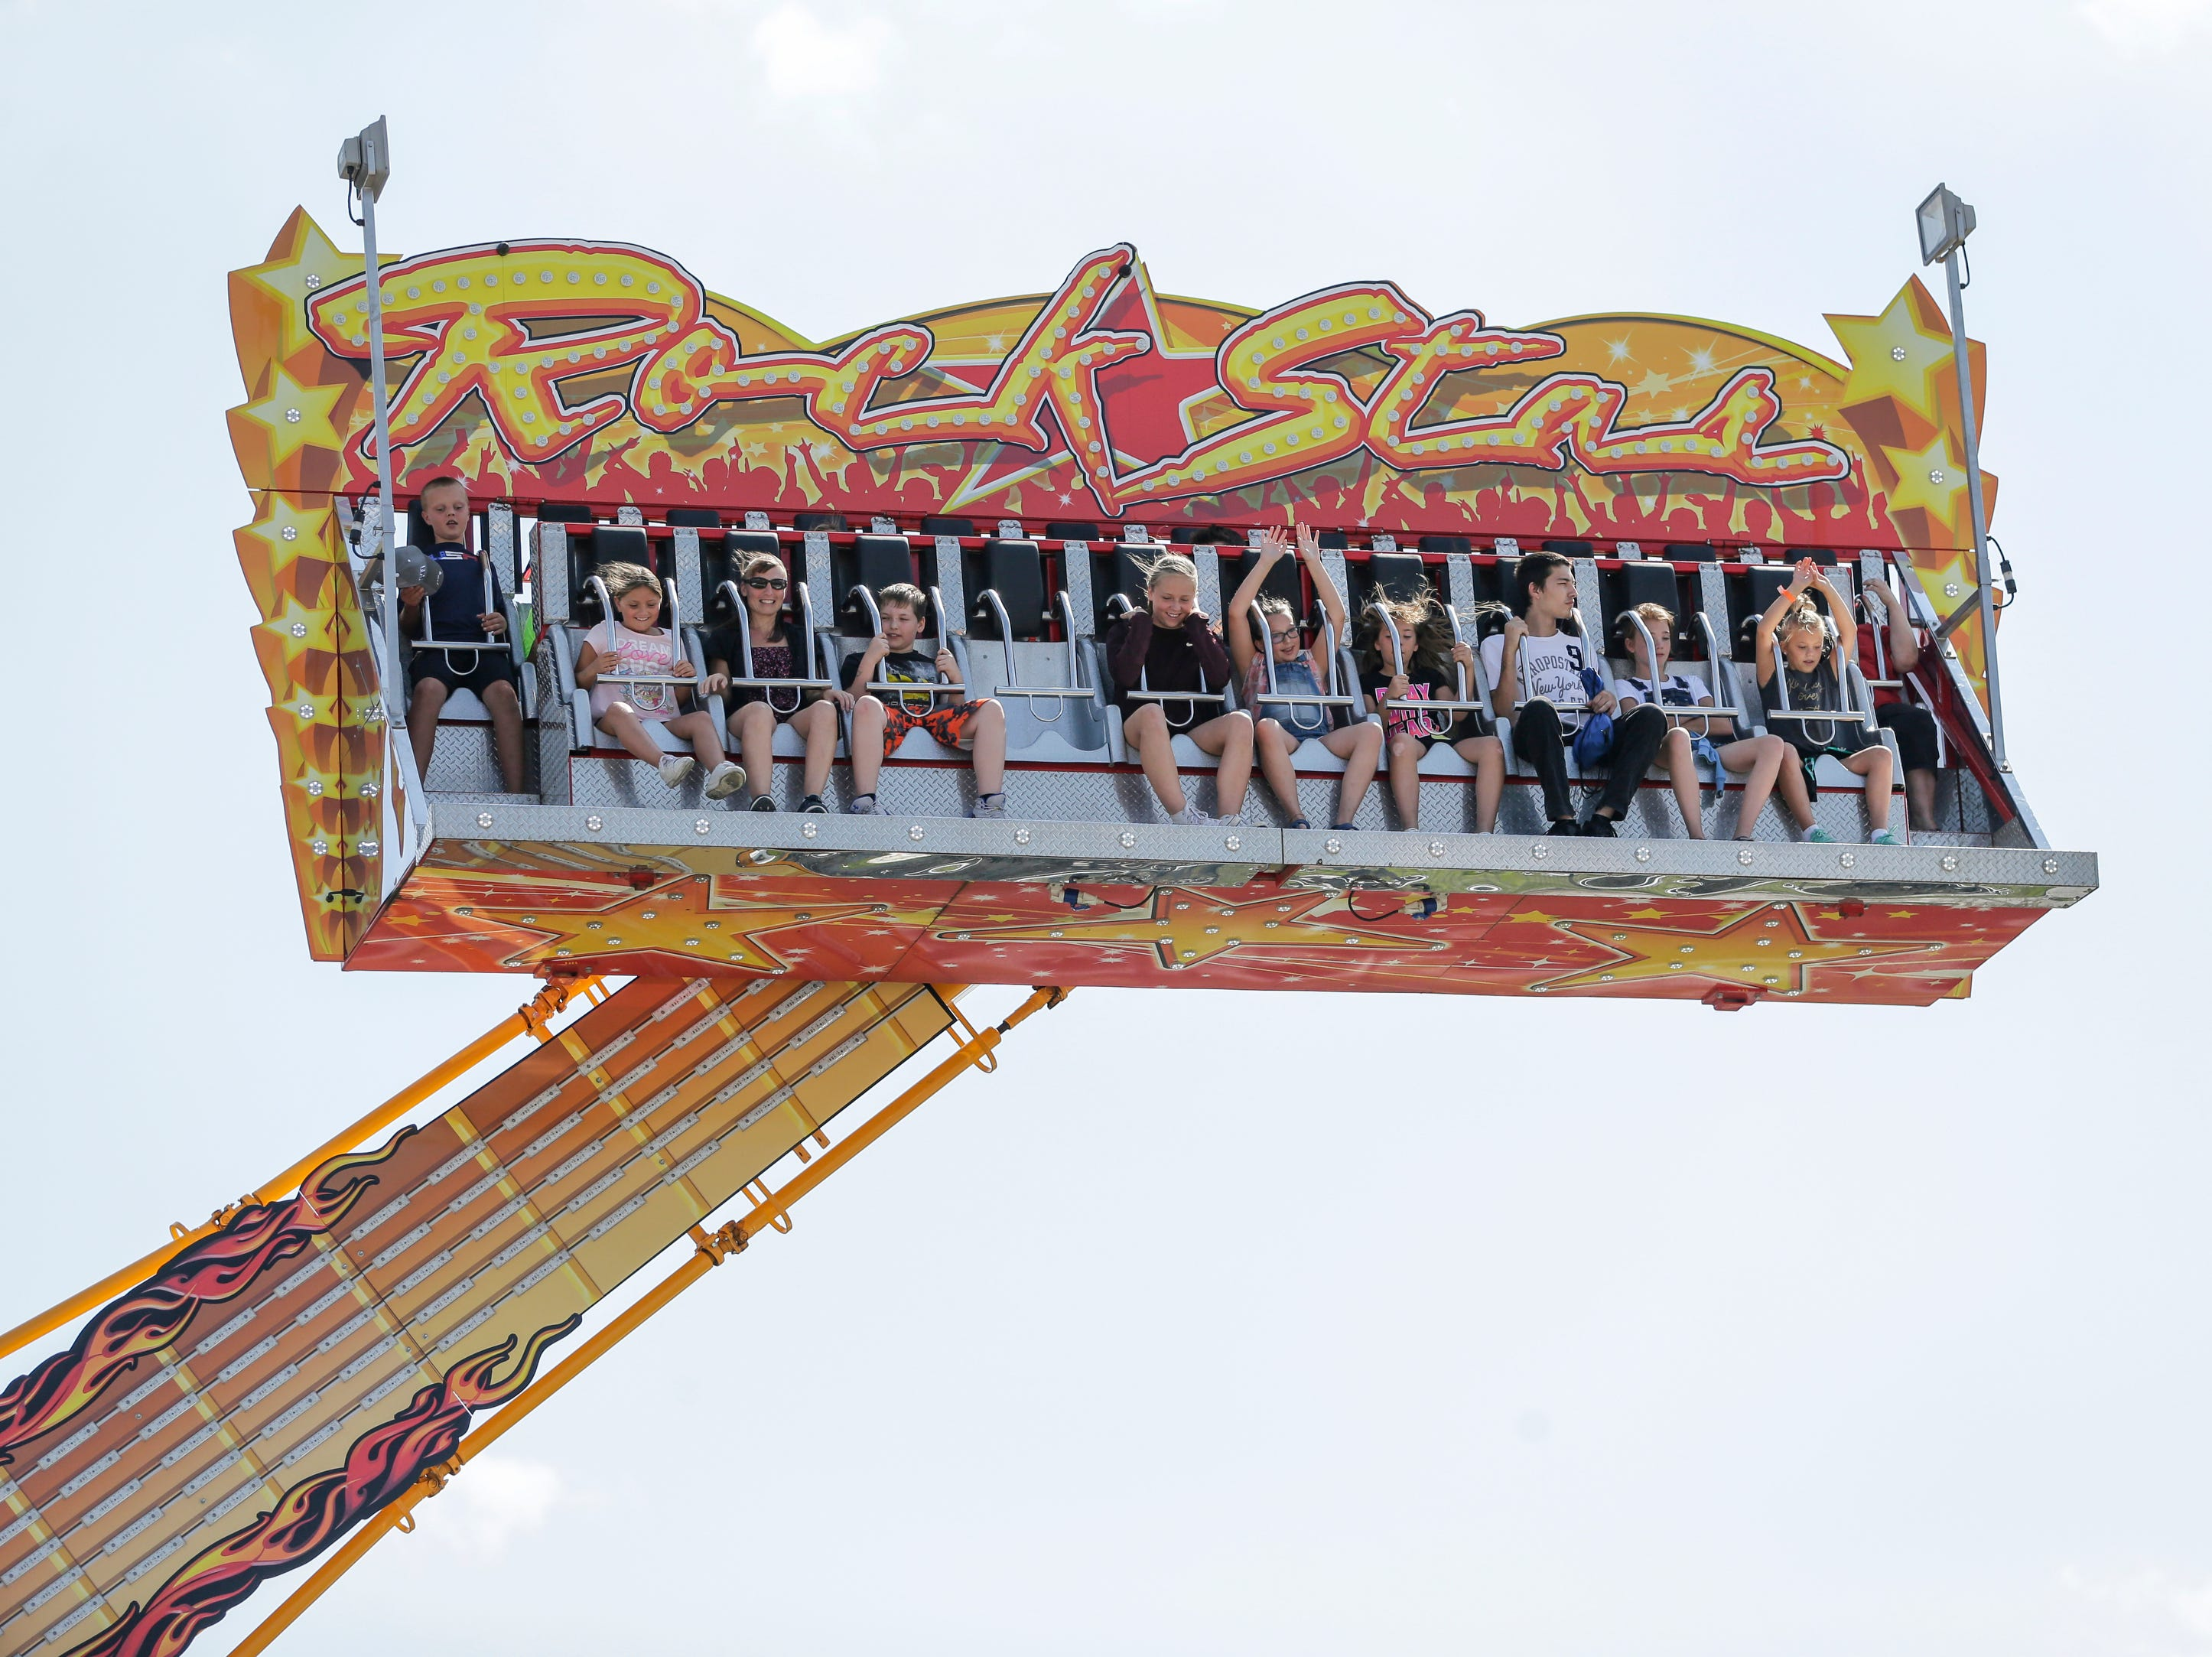 A ride thrills people at the Manitowoc County Fair Thursday, August 23, 2018, in Manitowoc, Wis. Josh Clark/USA TODAY NETWORK-Wisconsin